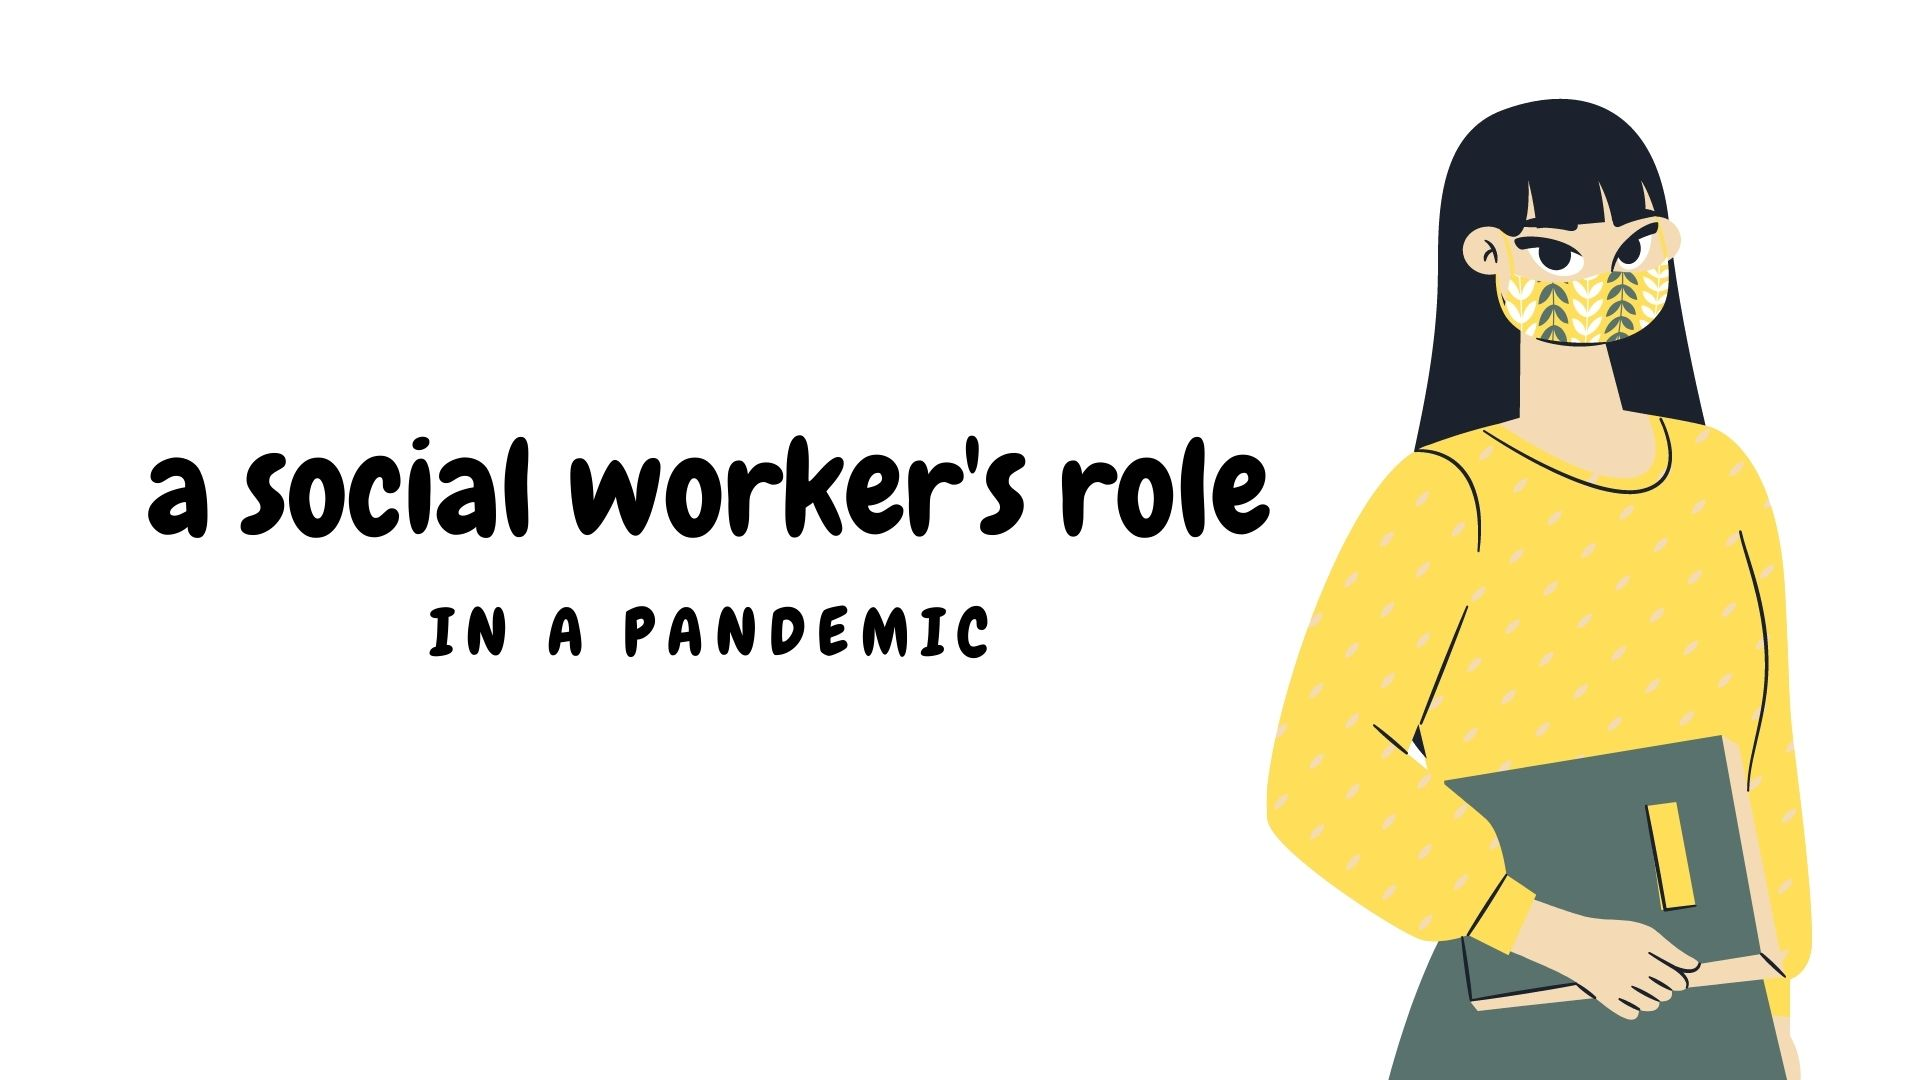 social worker's role in pandemic